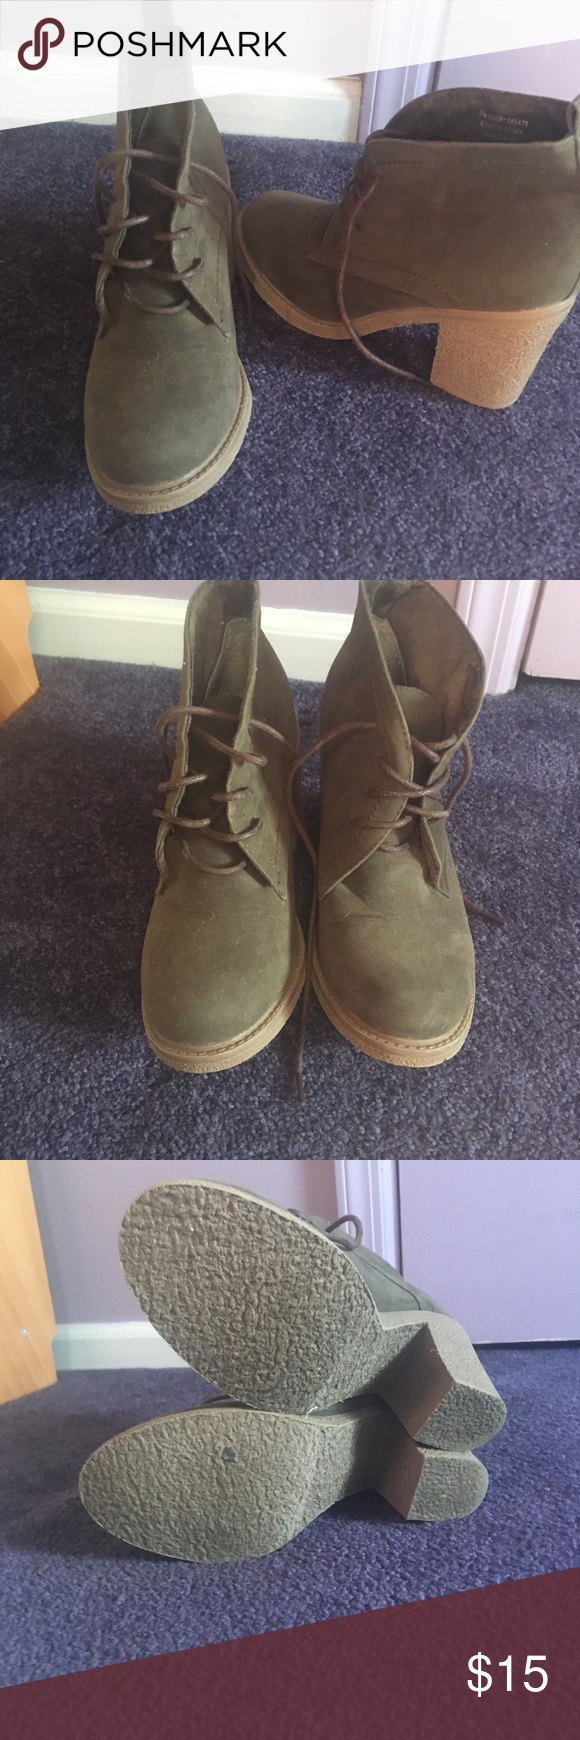 47f021b1b46 Army green booties size 8 Army green lace up booties NWOT Atmosphere ...